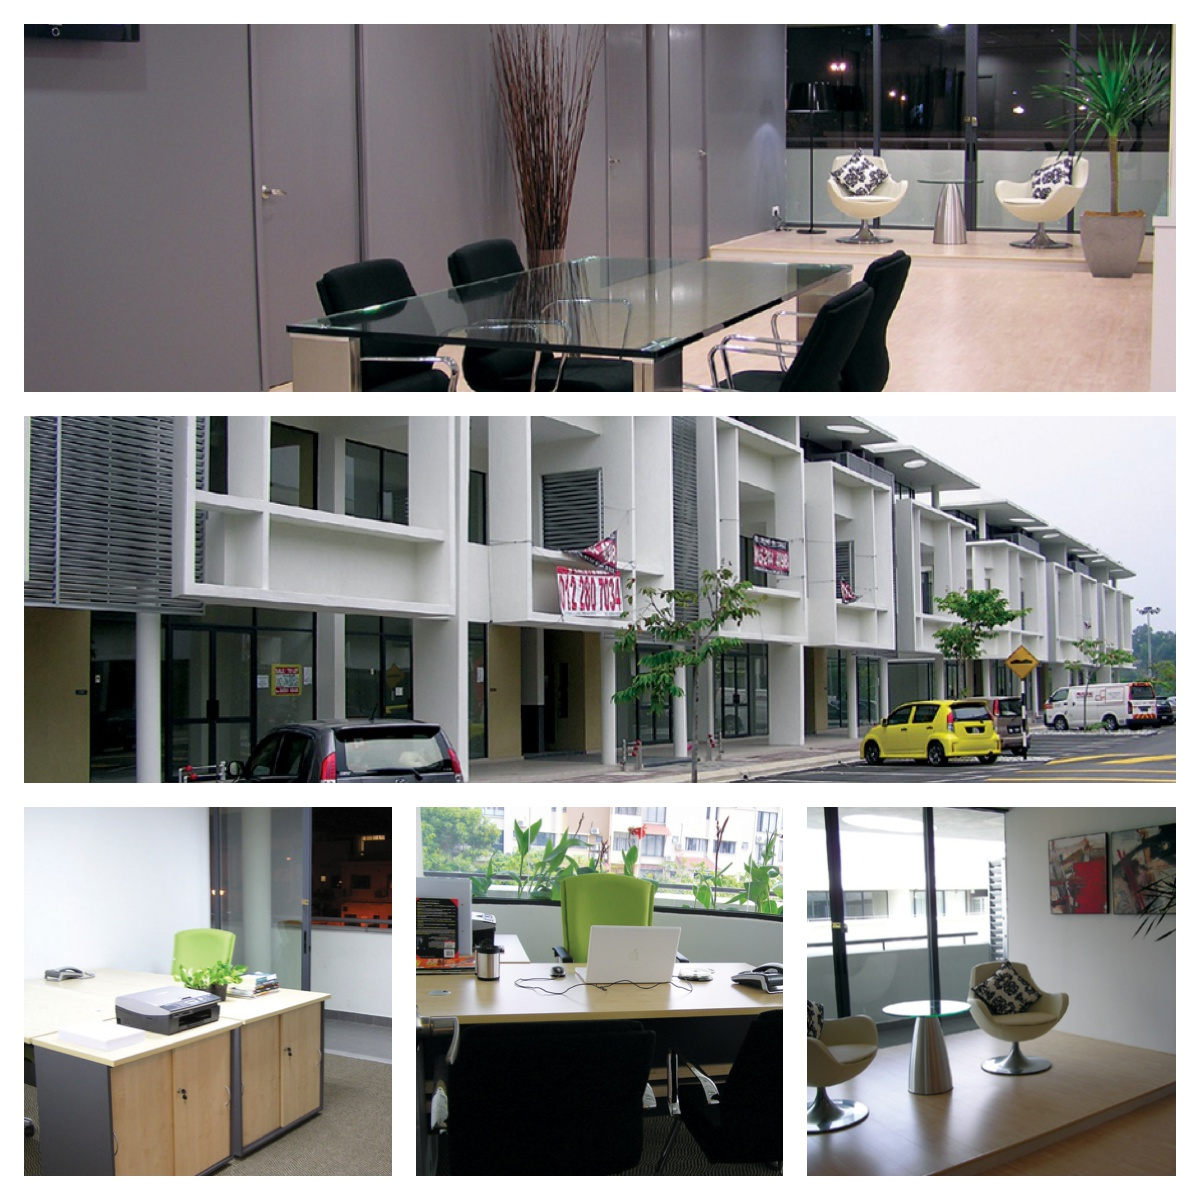 Rent Near Me: Office Space For Rent Near Me